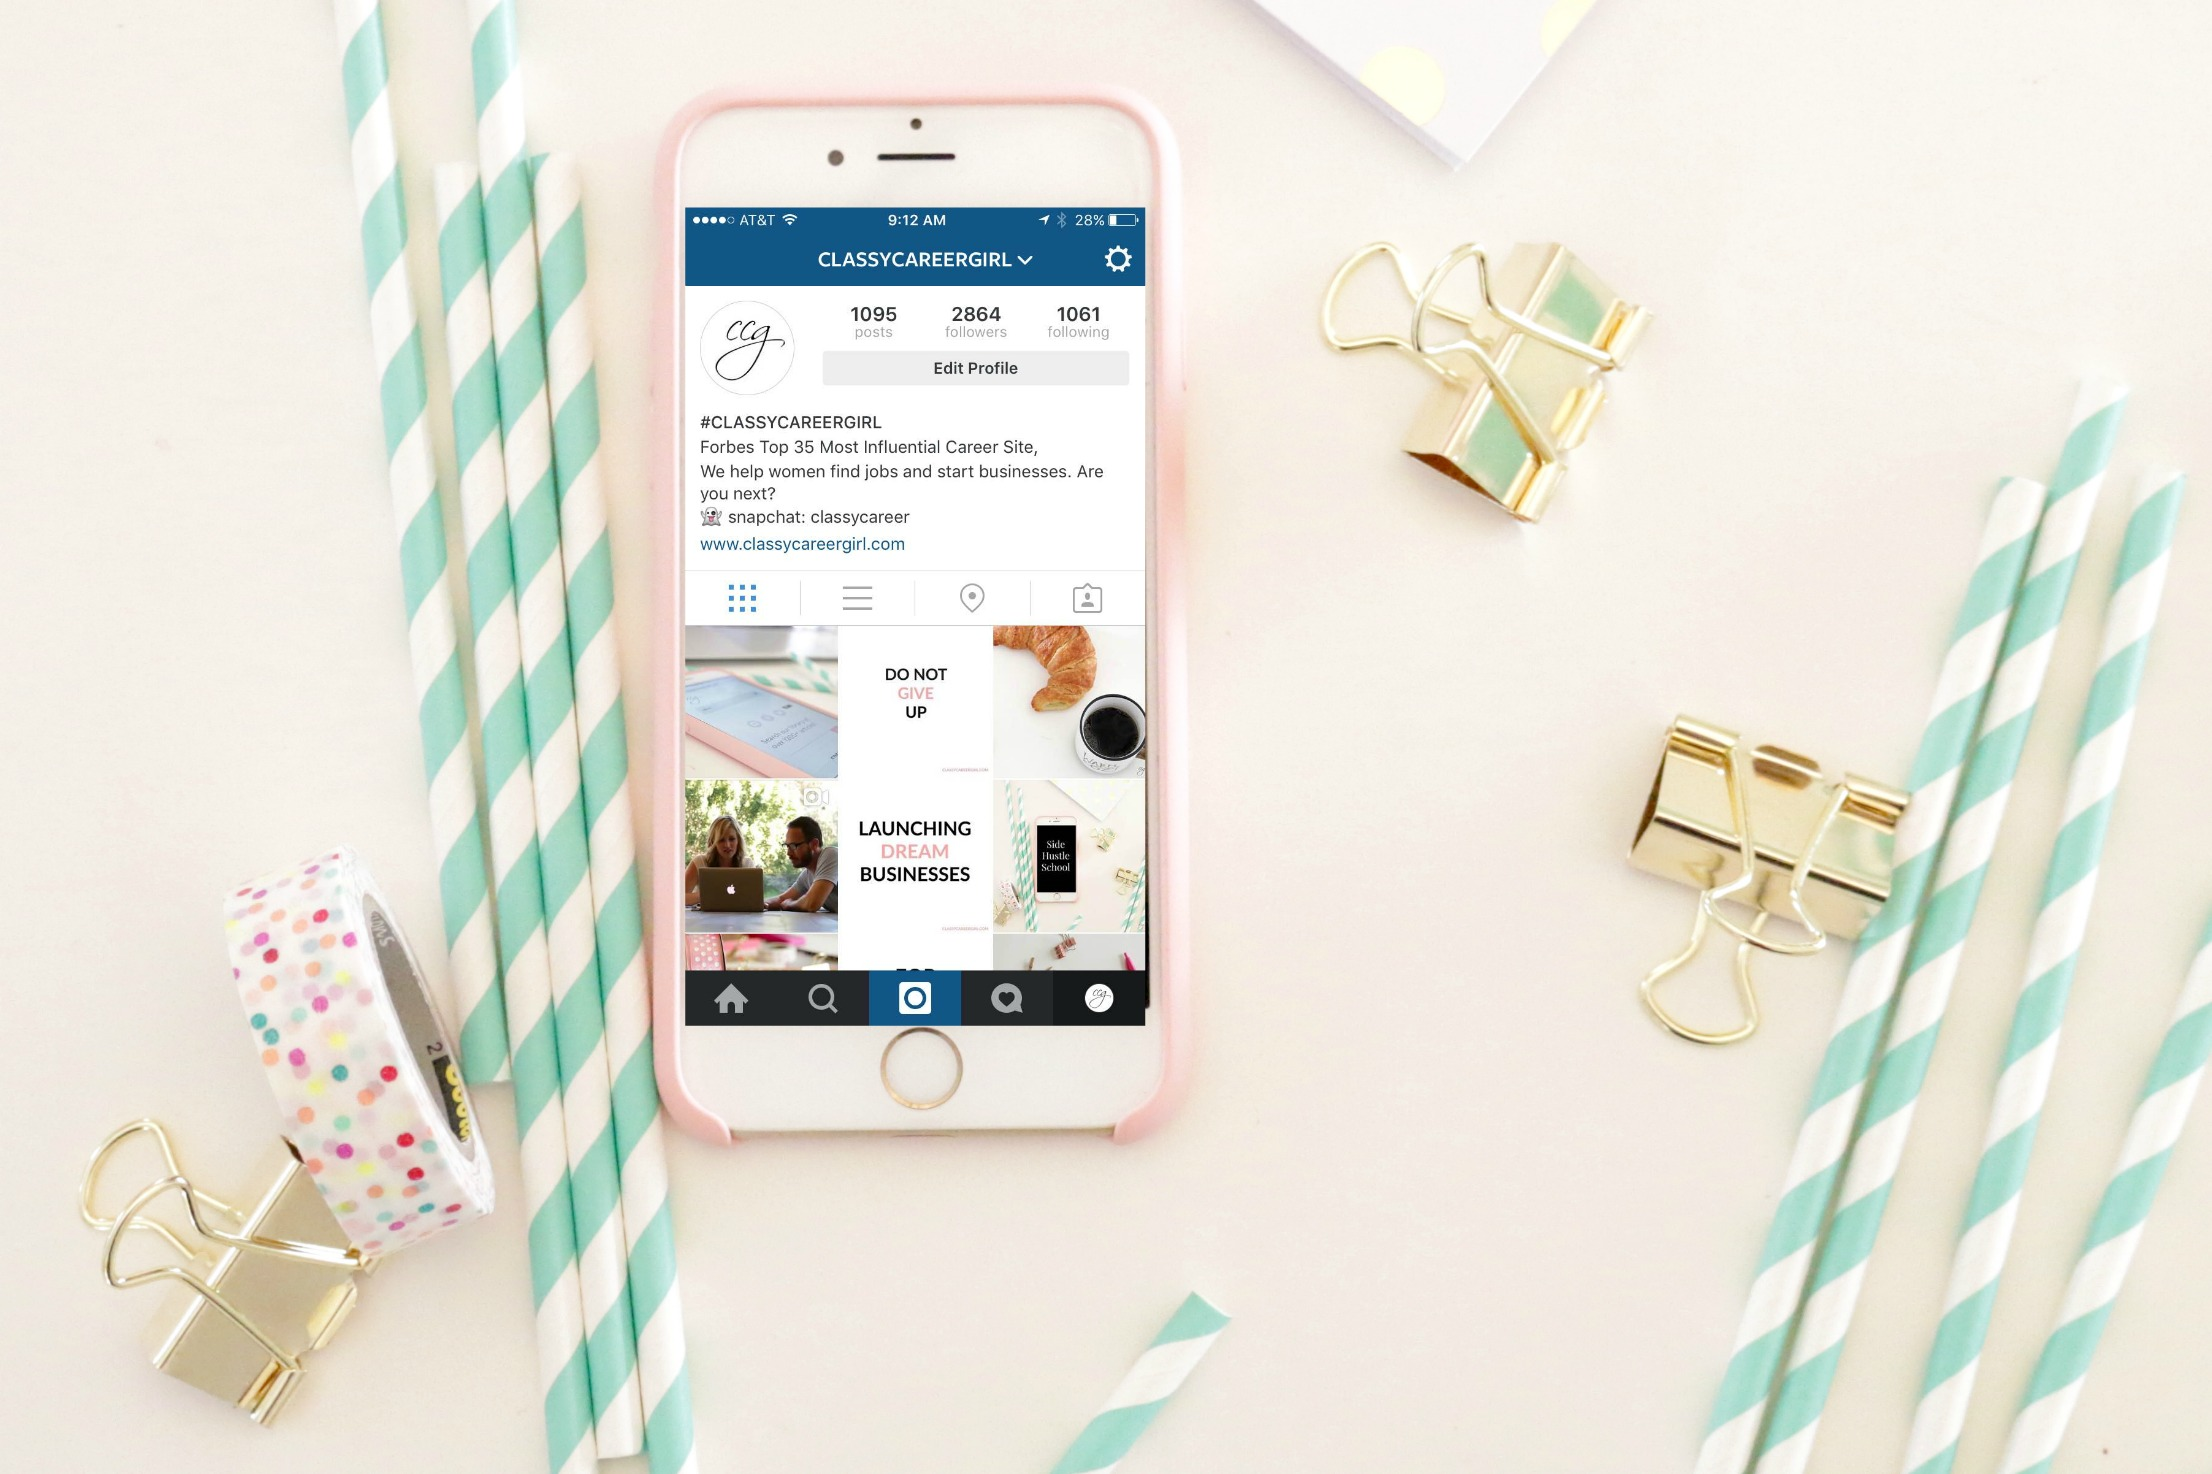 How to Succeed With The New Instagram Algorithm